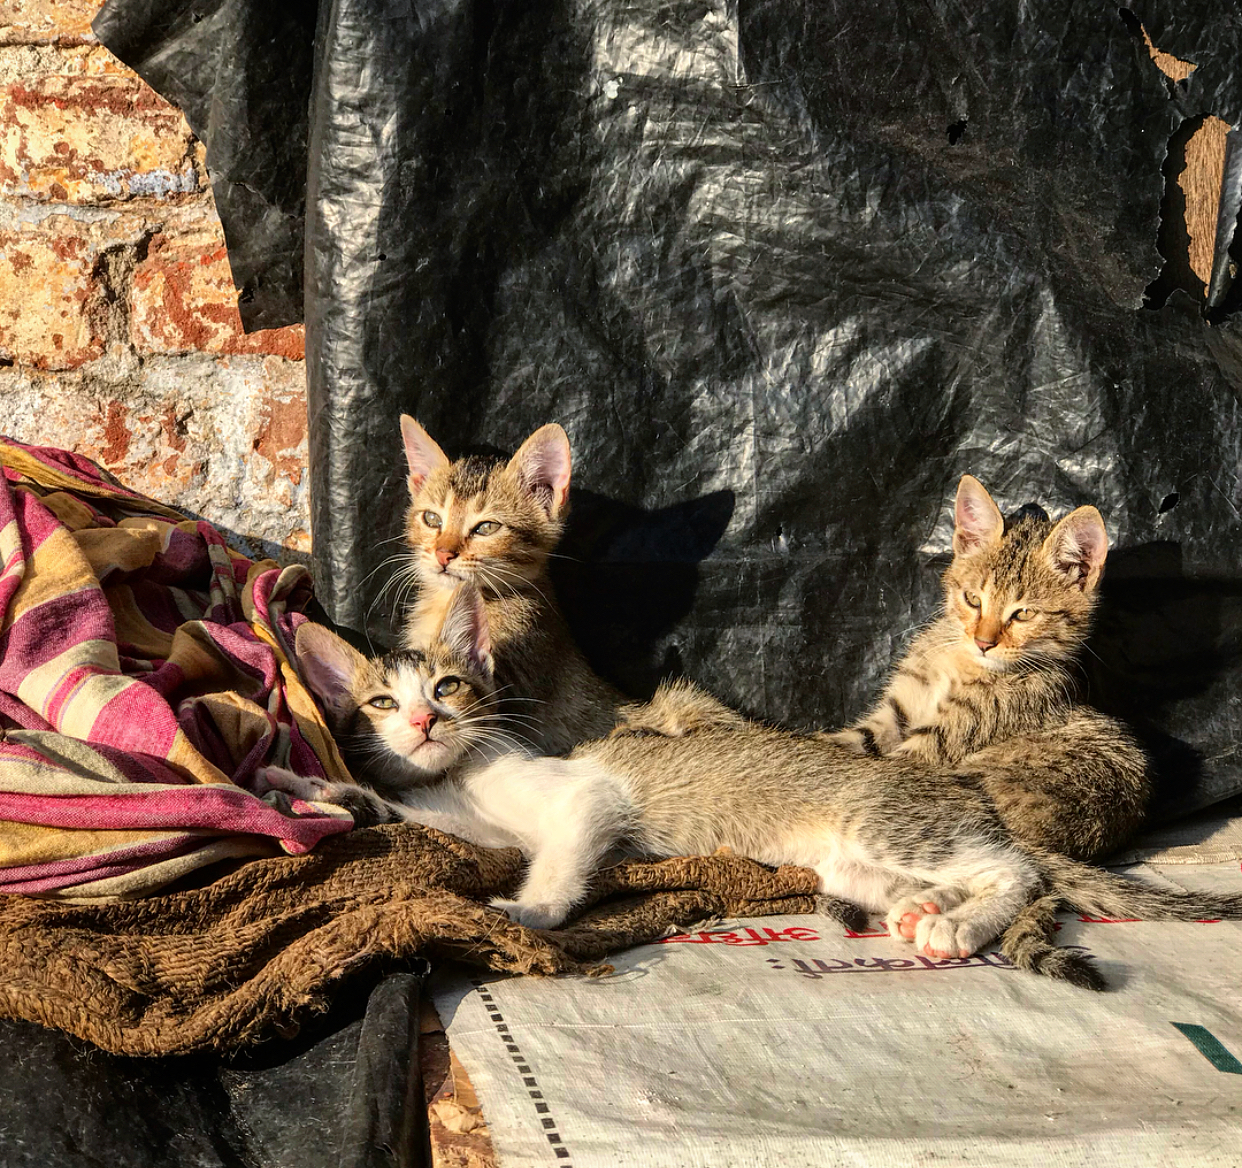 Street kittens (which you don't see many of, maybe due to the copious amount of street dogs).